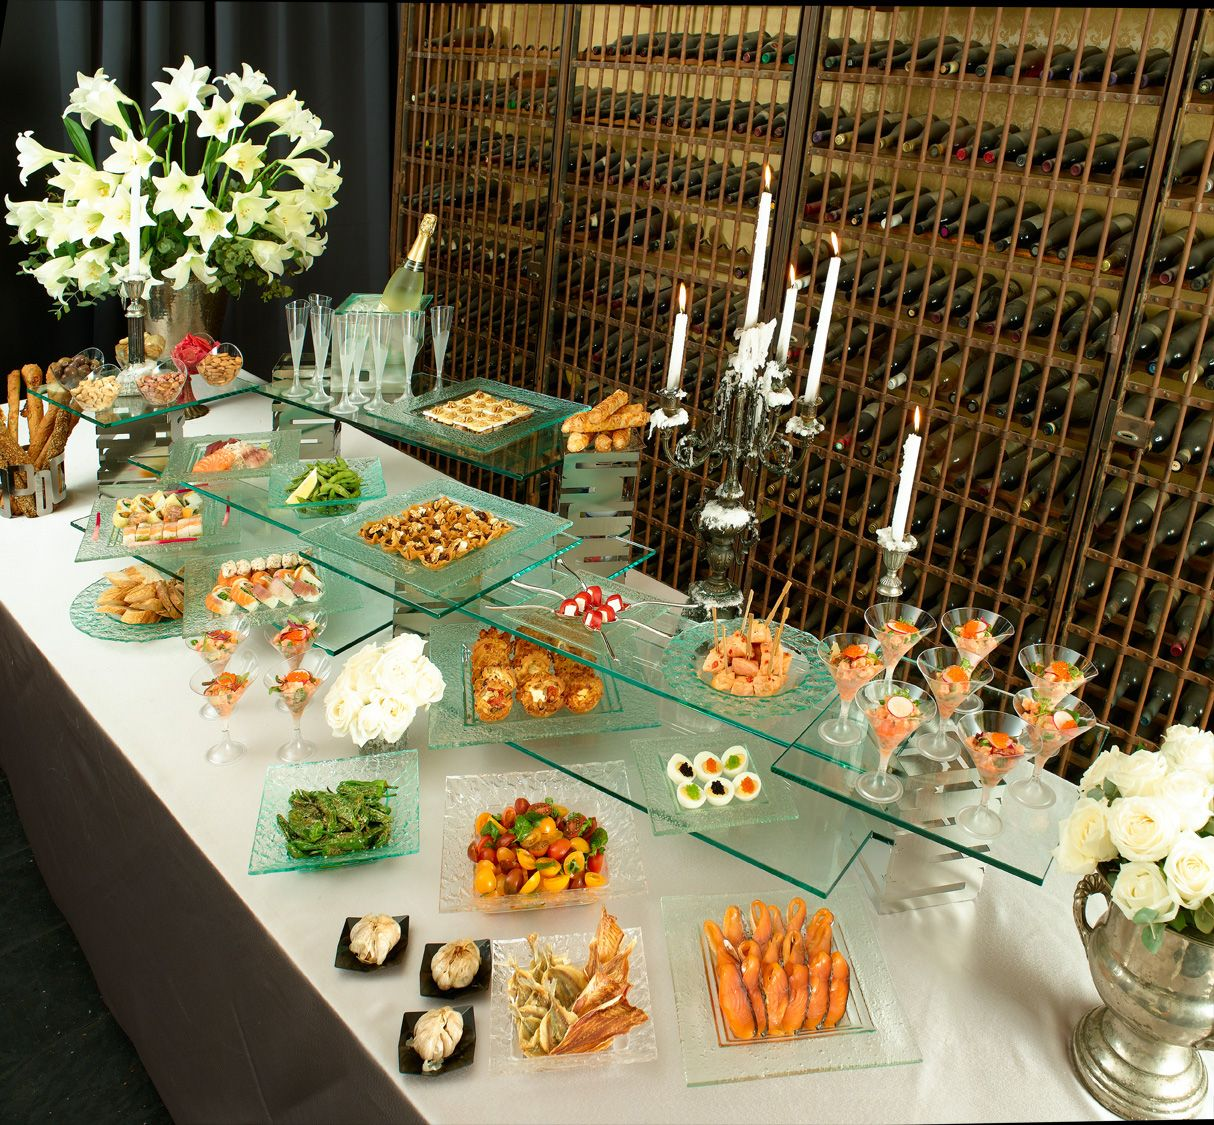 Food Catering Near